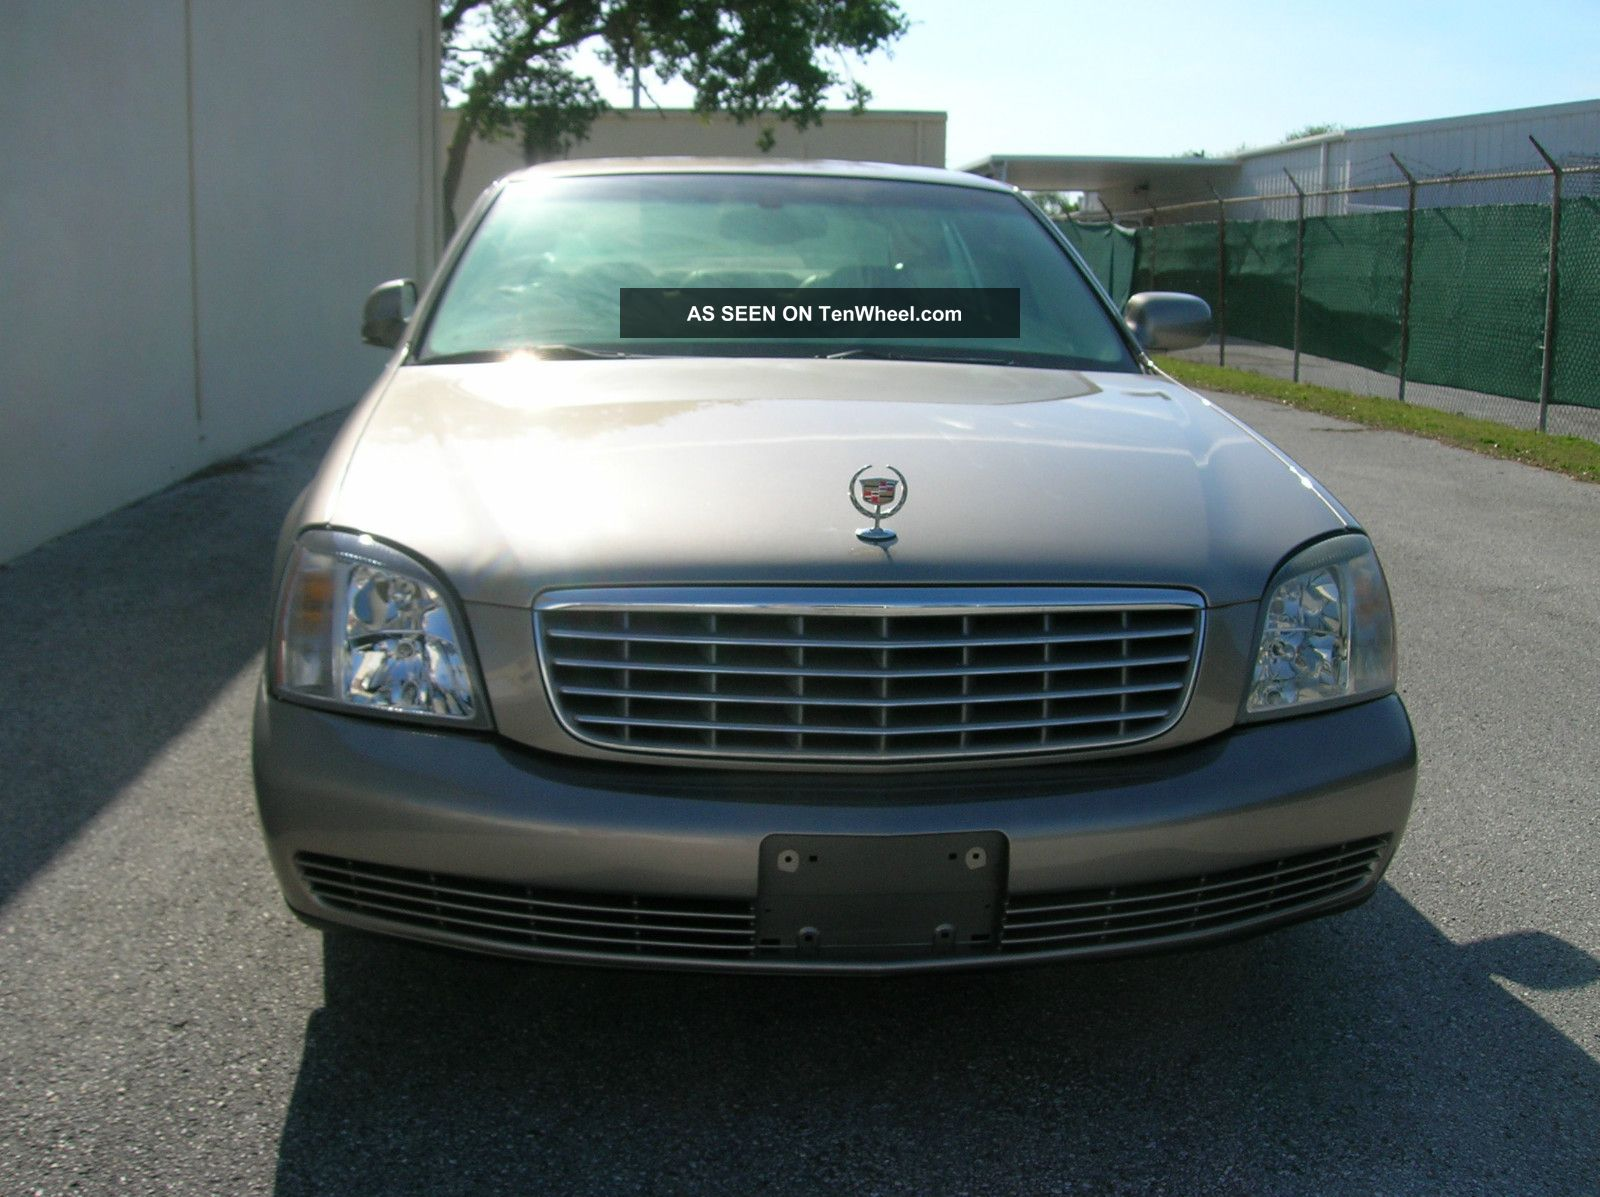 2003 cadillac sedan deville. Cars Review. Best American Auto & Cars Review